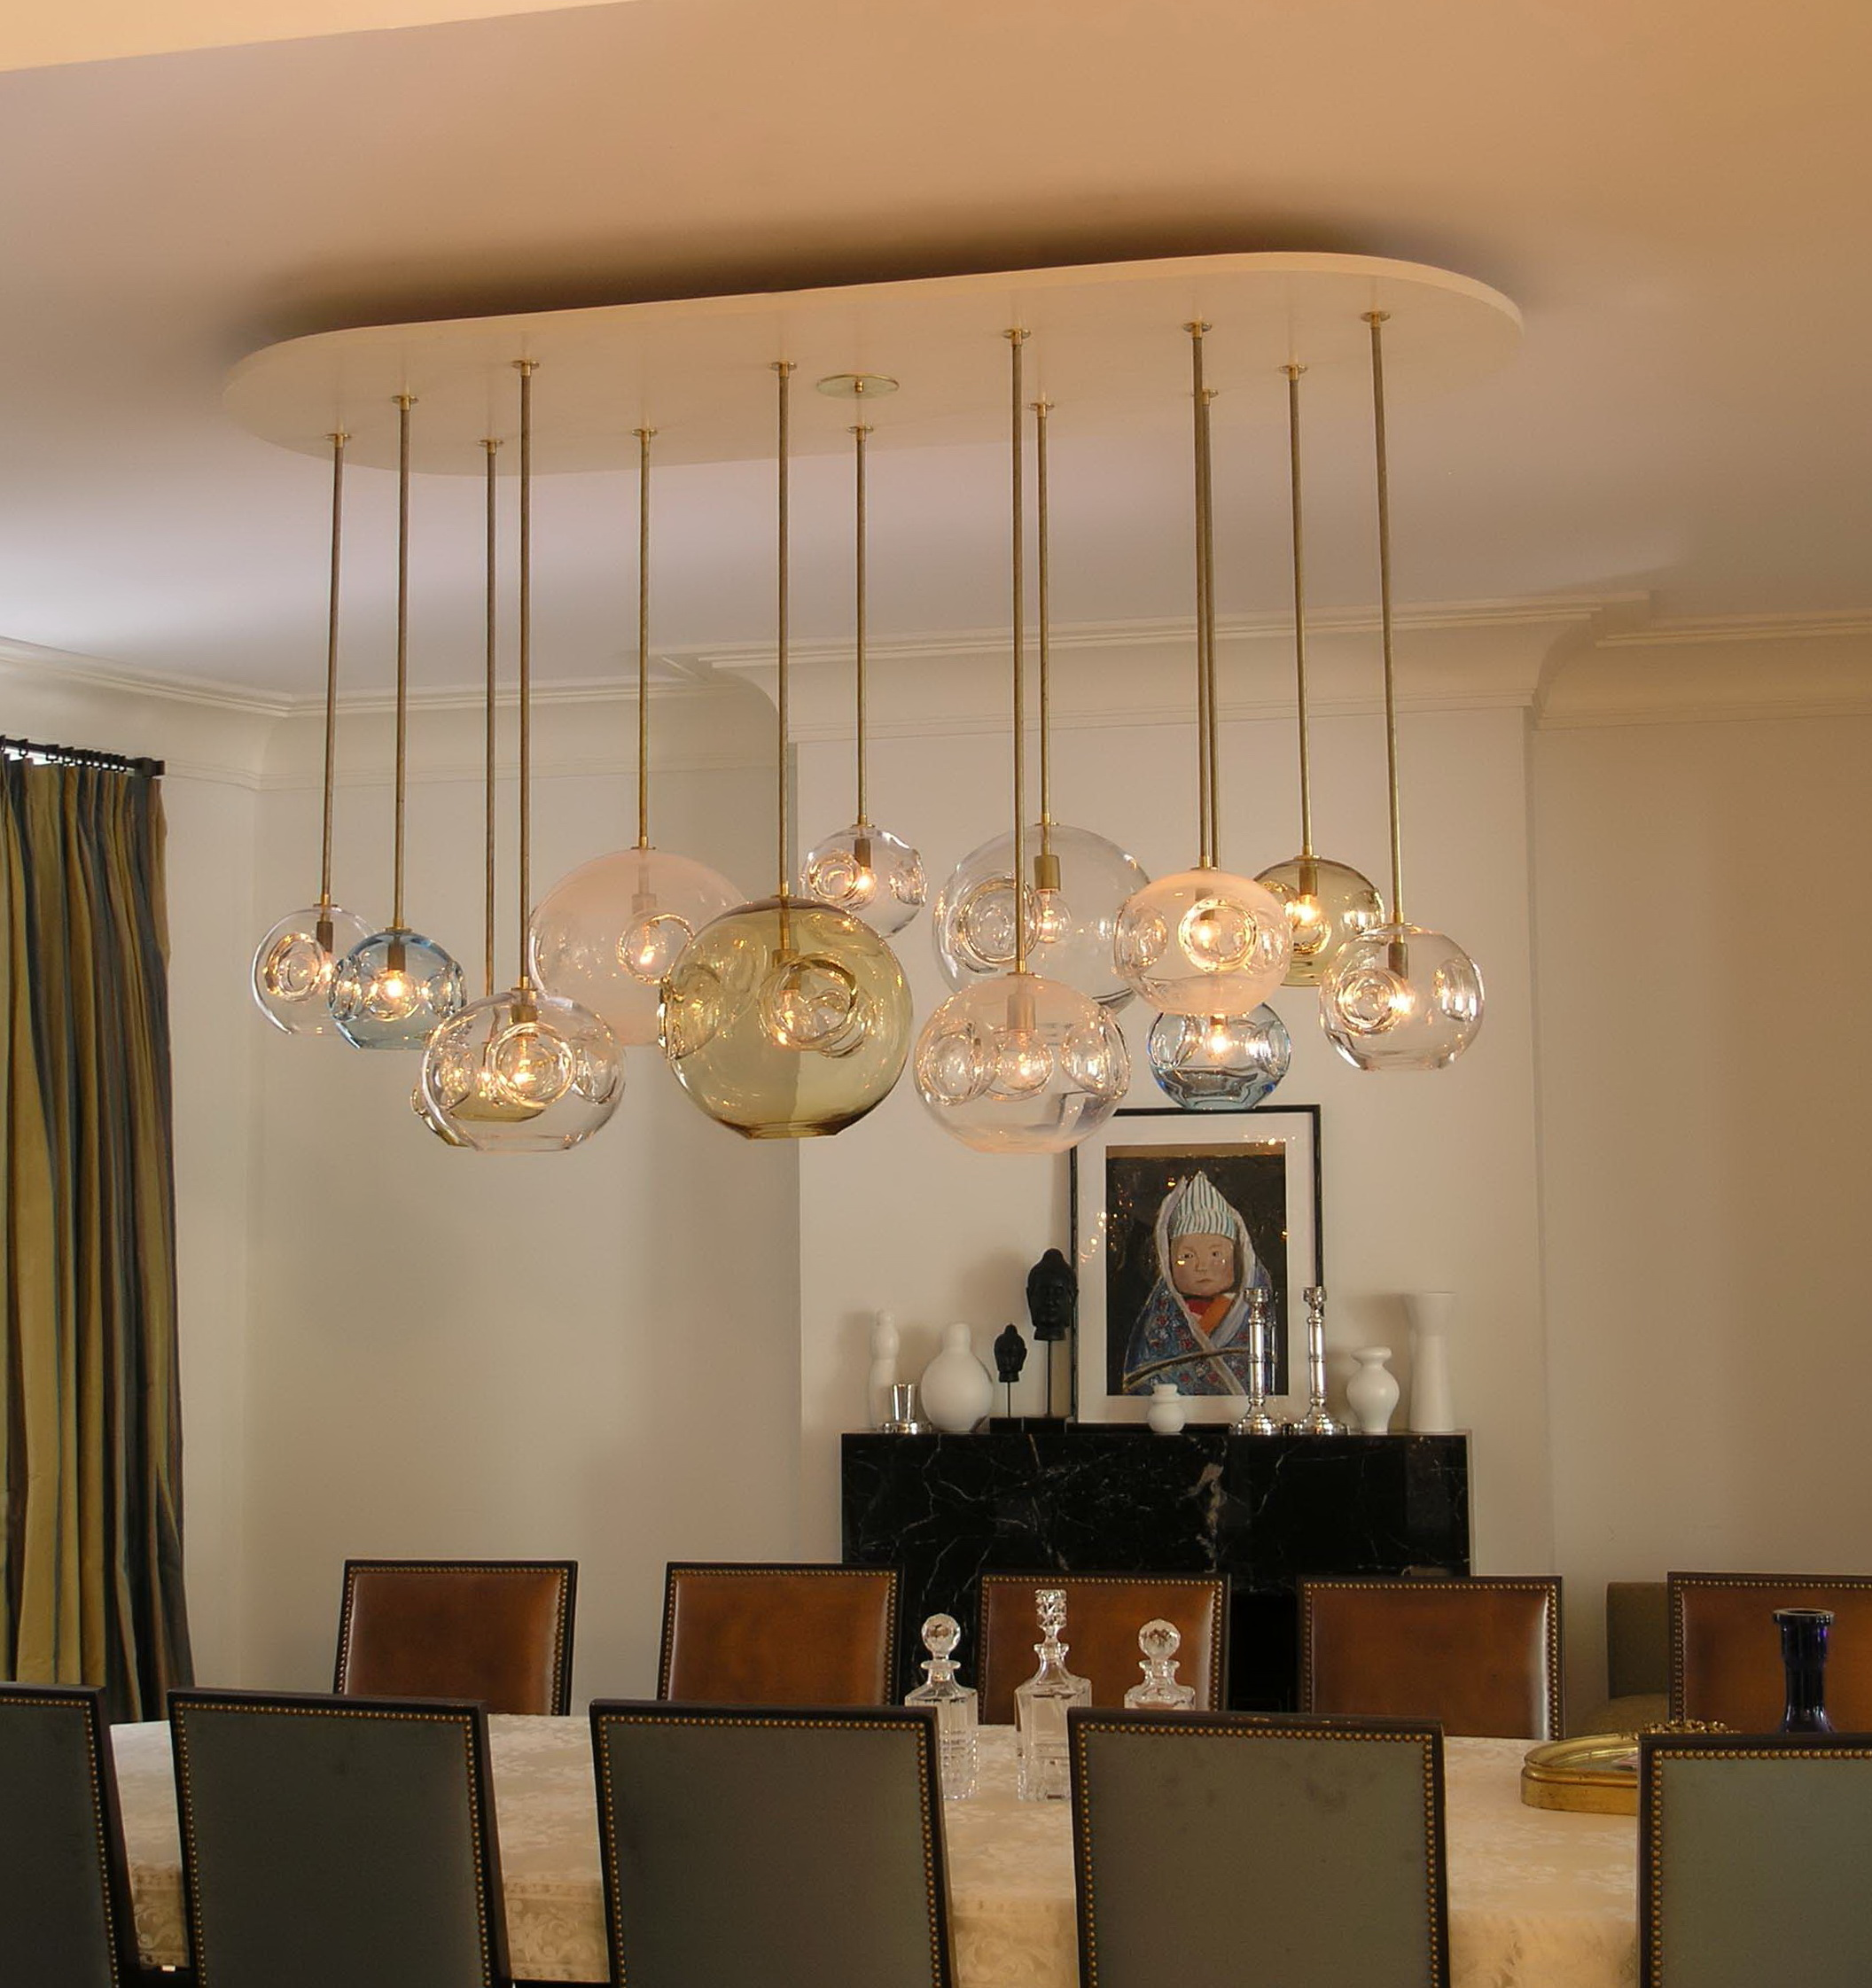 Modern contemporary dining room chandeliers home design for Dining room chandeliers modern